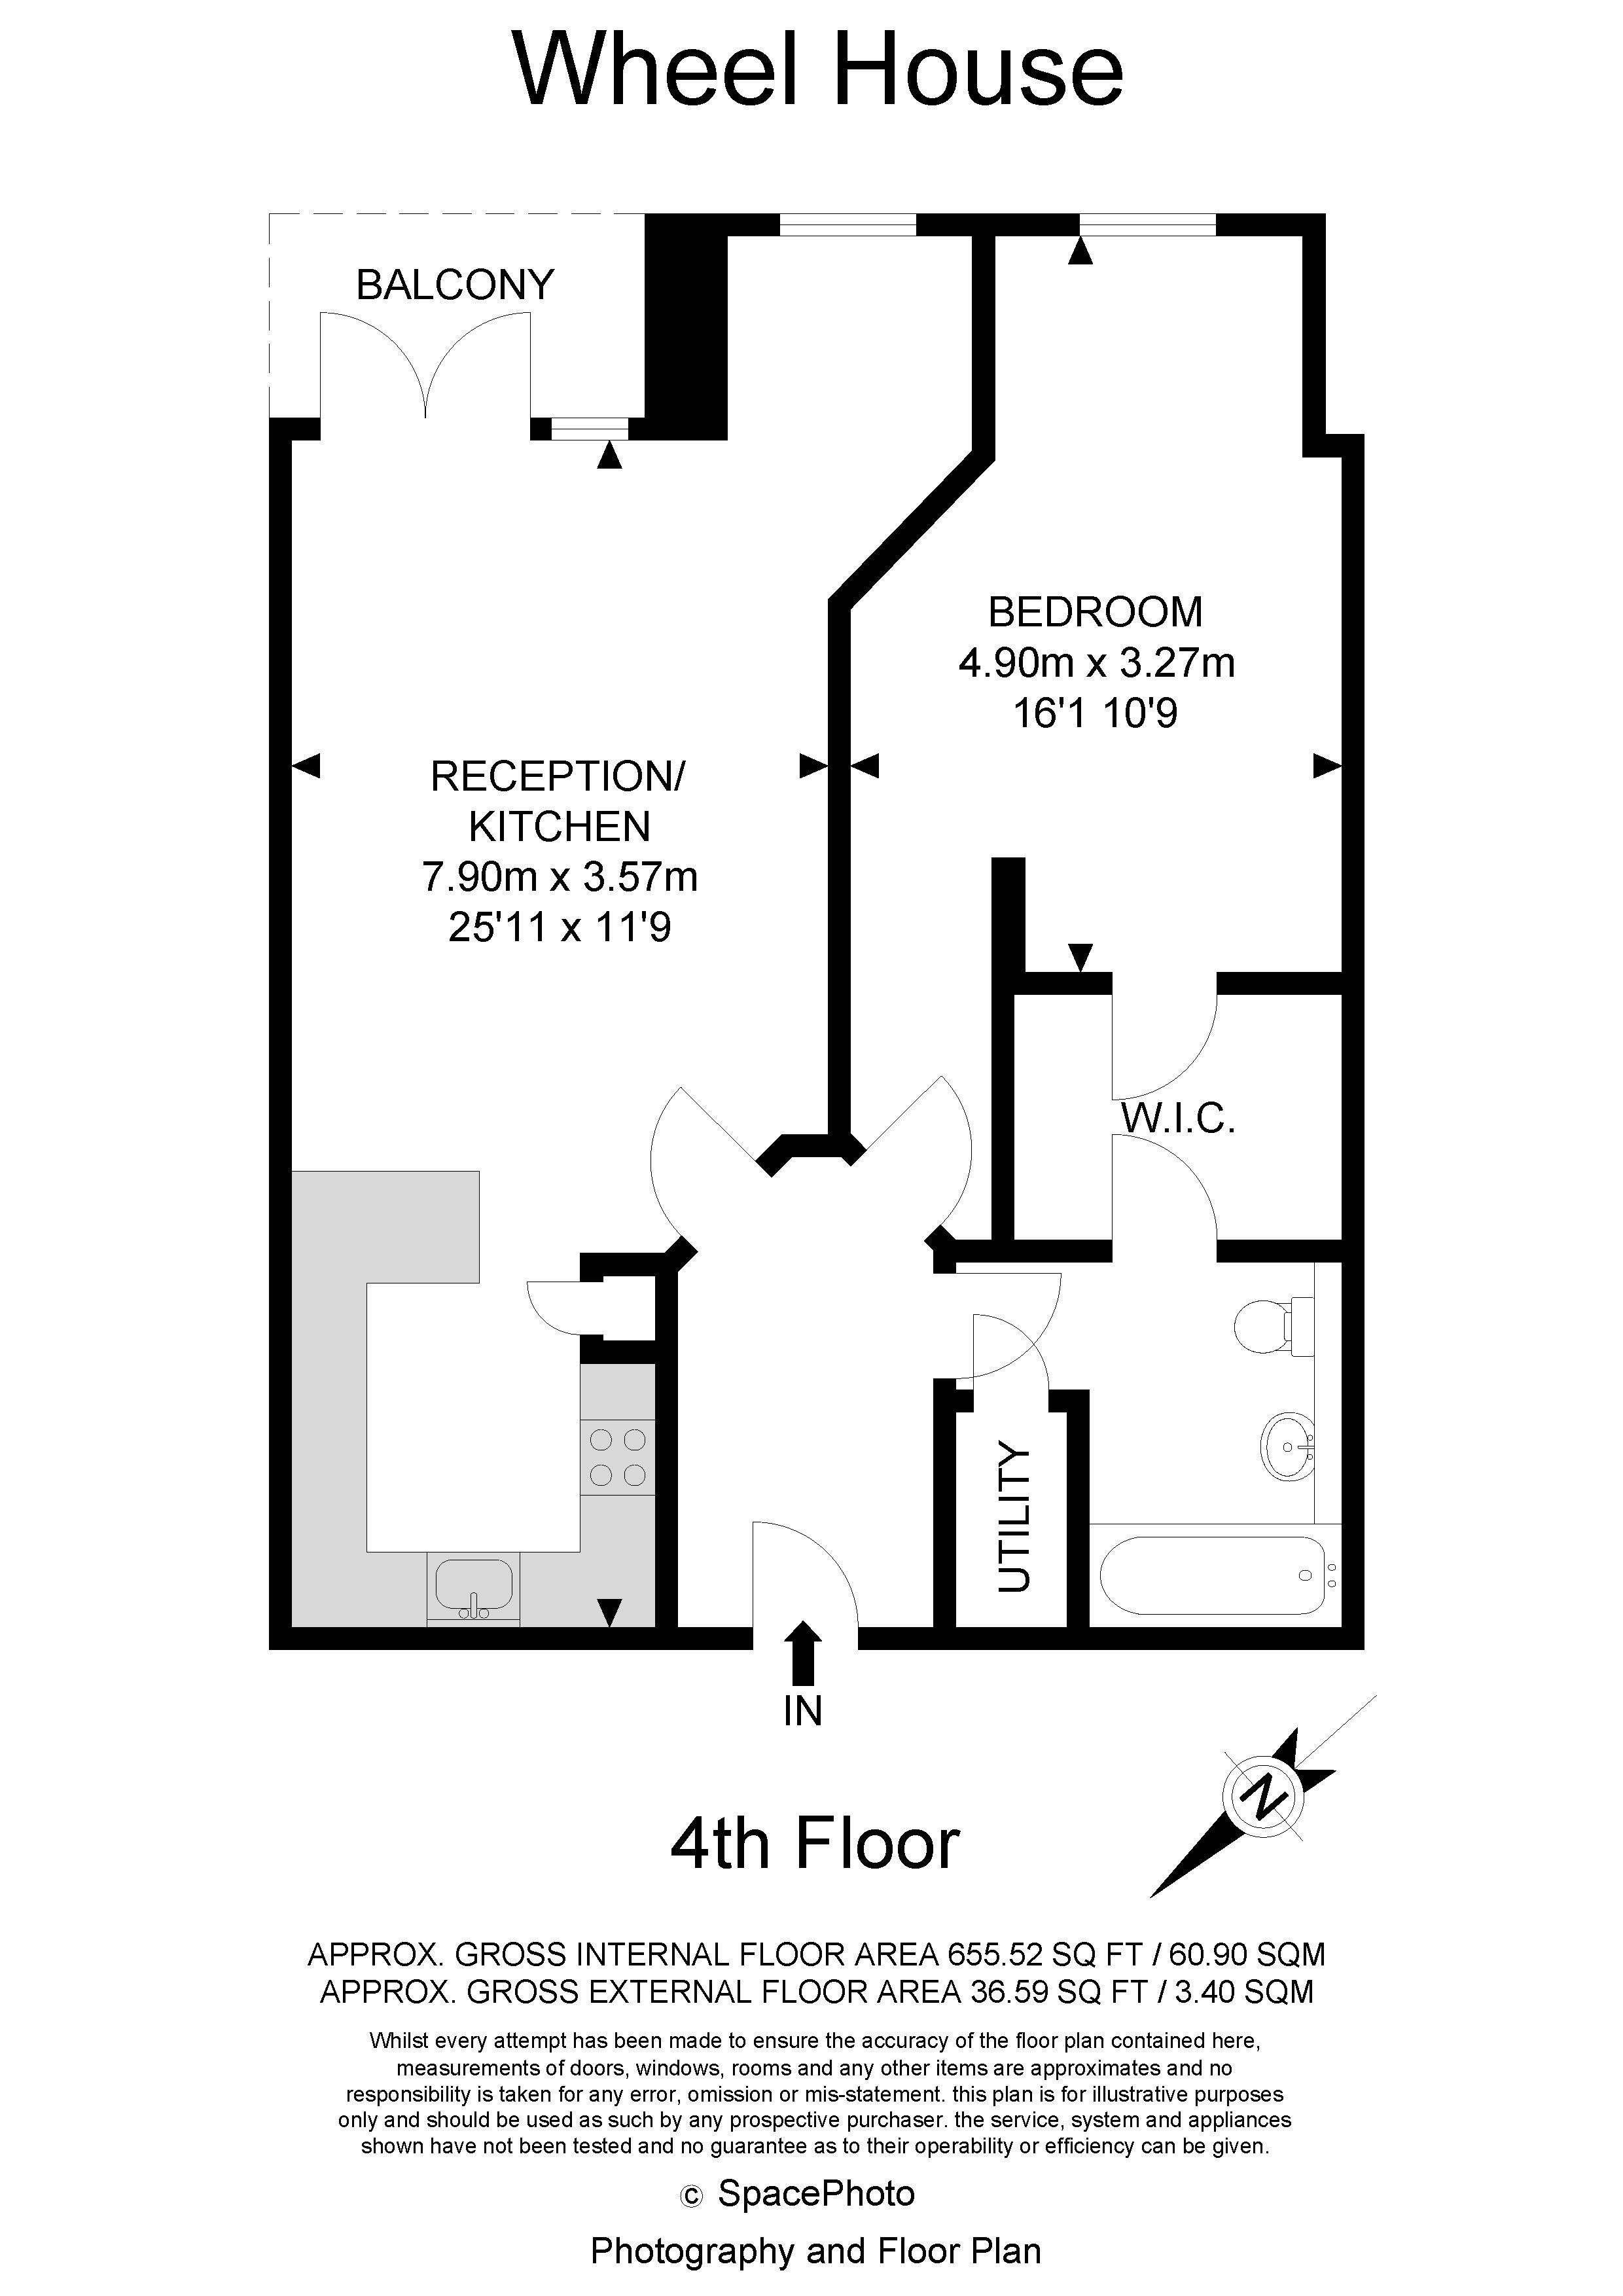 1 bed flat for sale in Wheel House - Property Floorplan